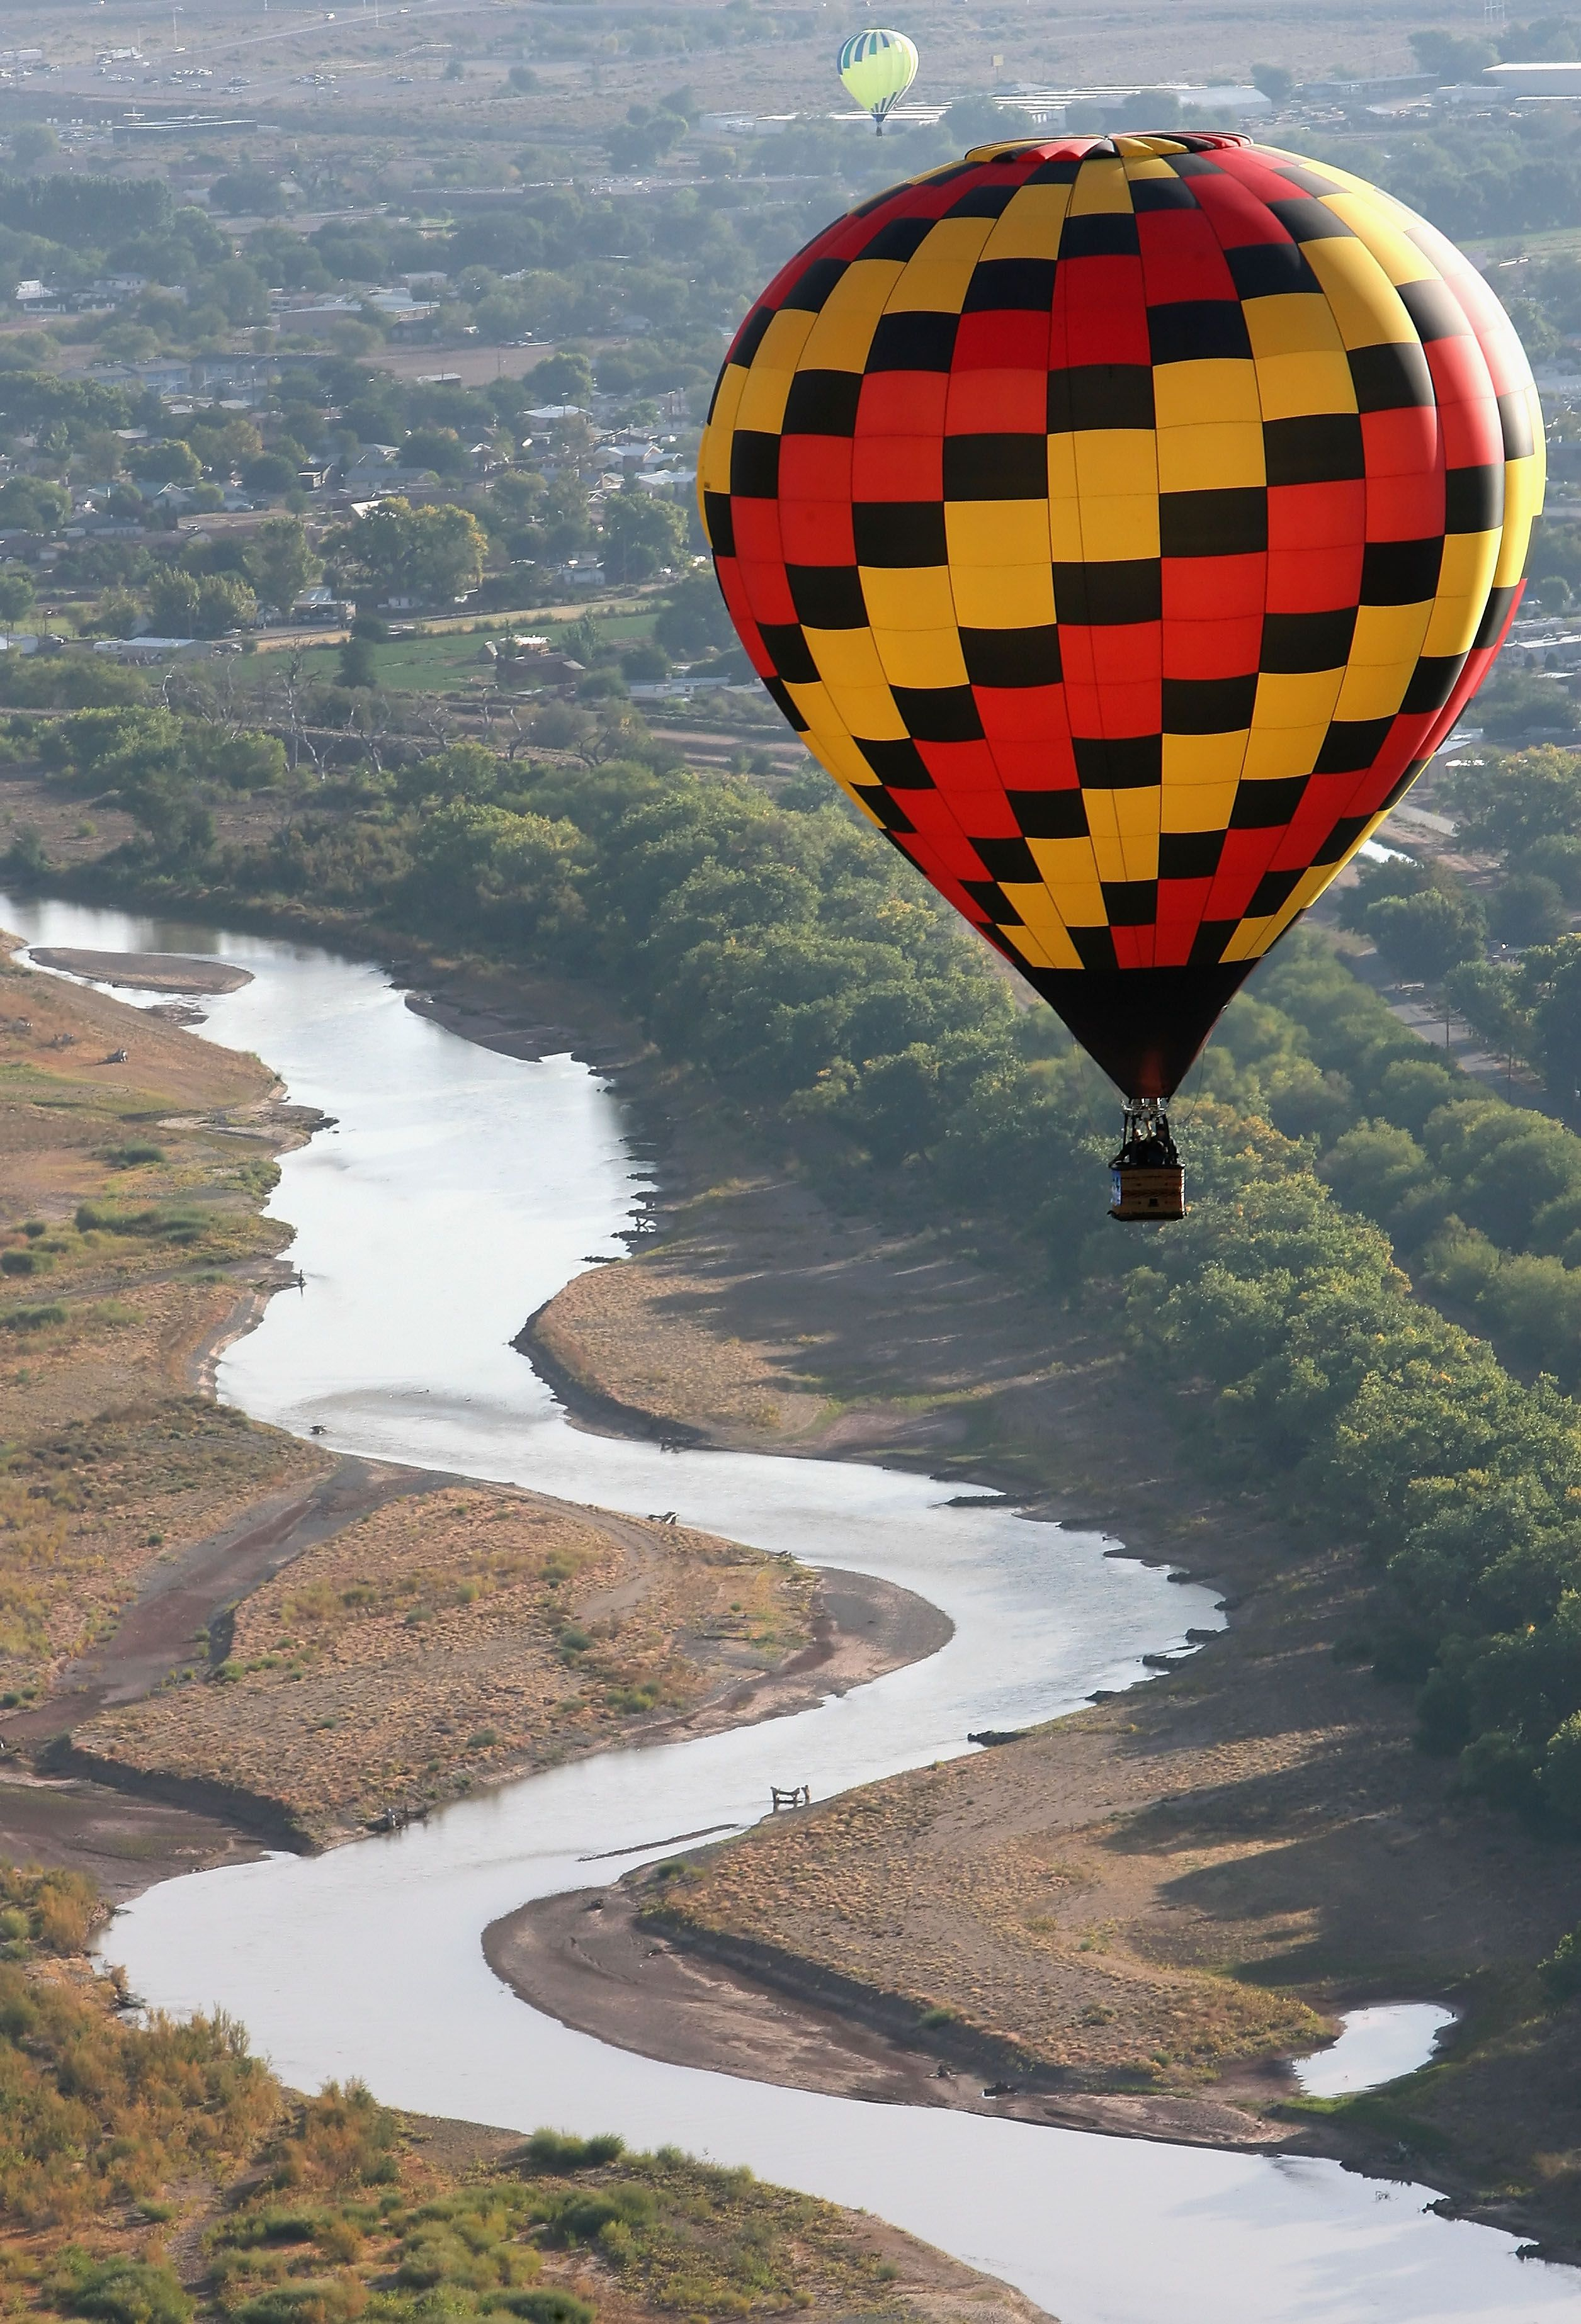 hot air balloon ride. or get proposed to in a hot air